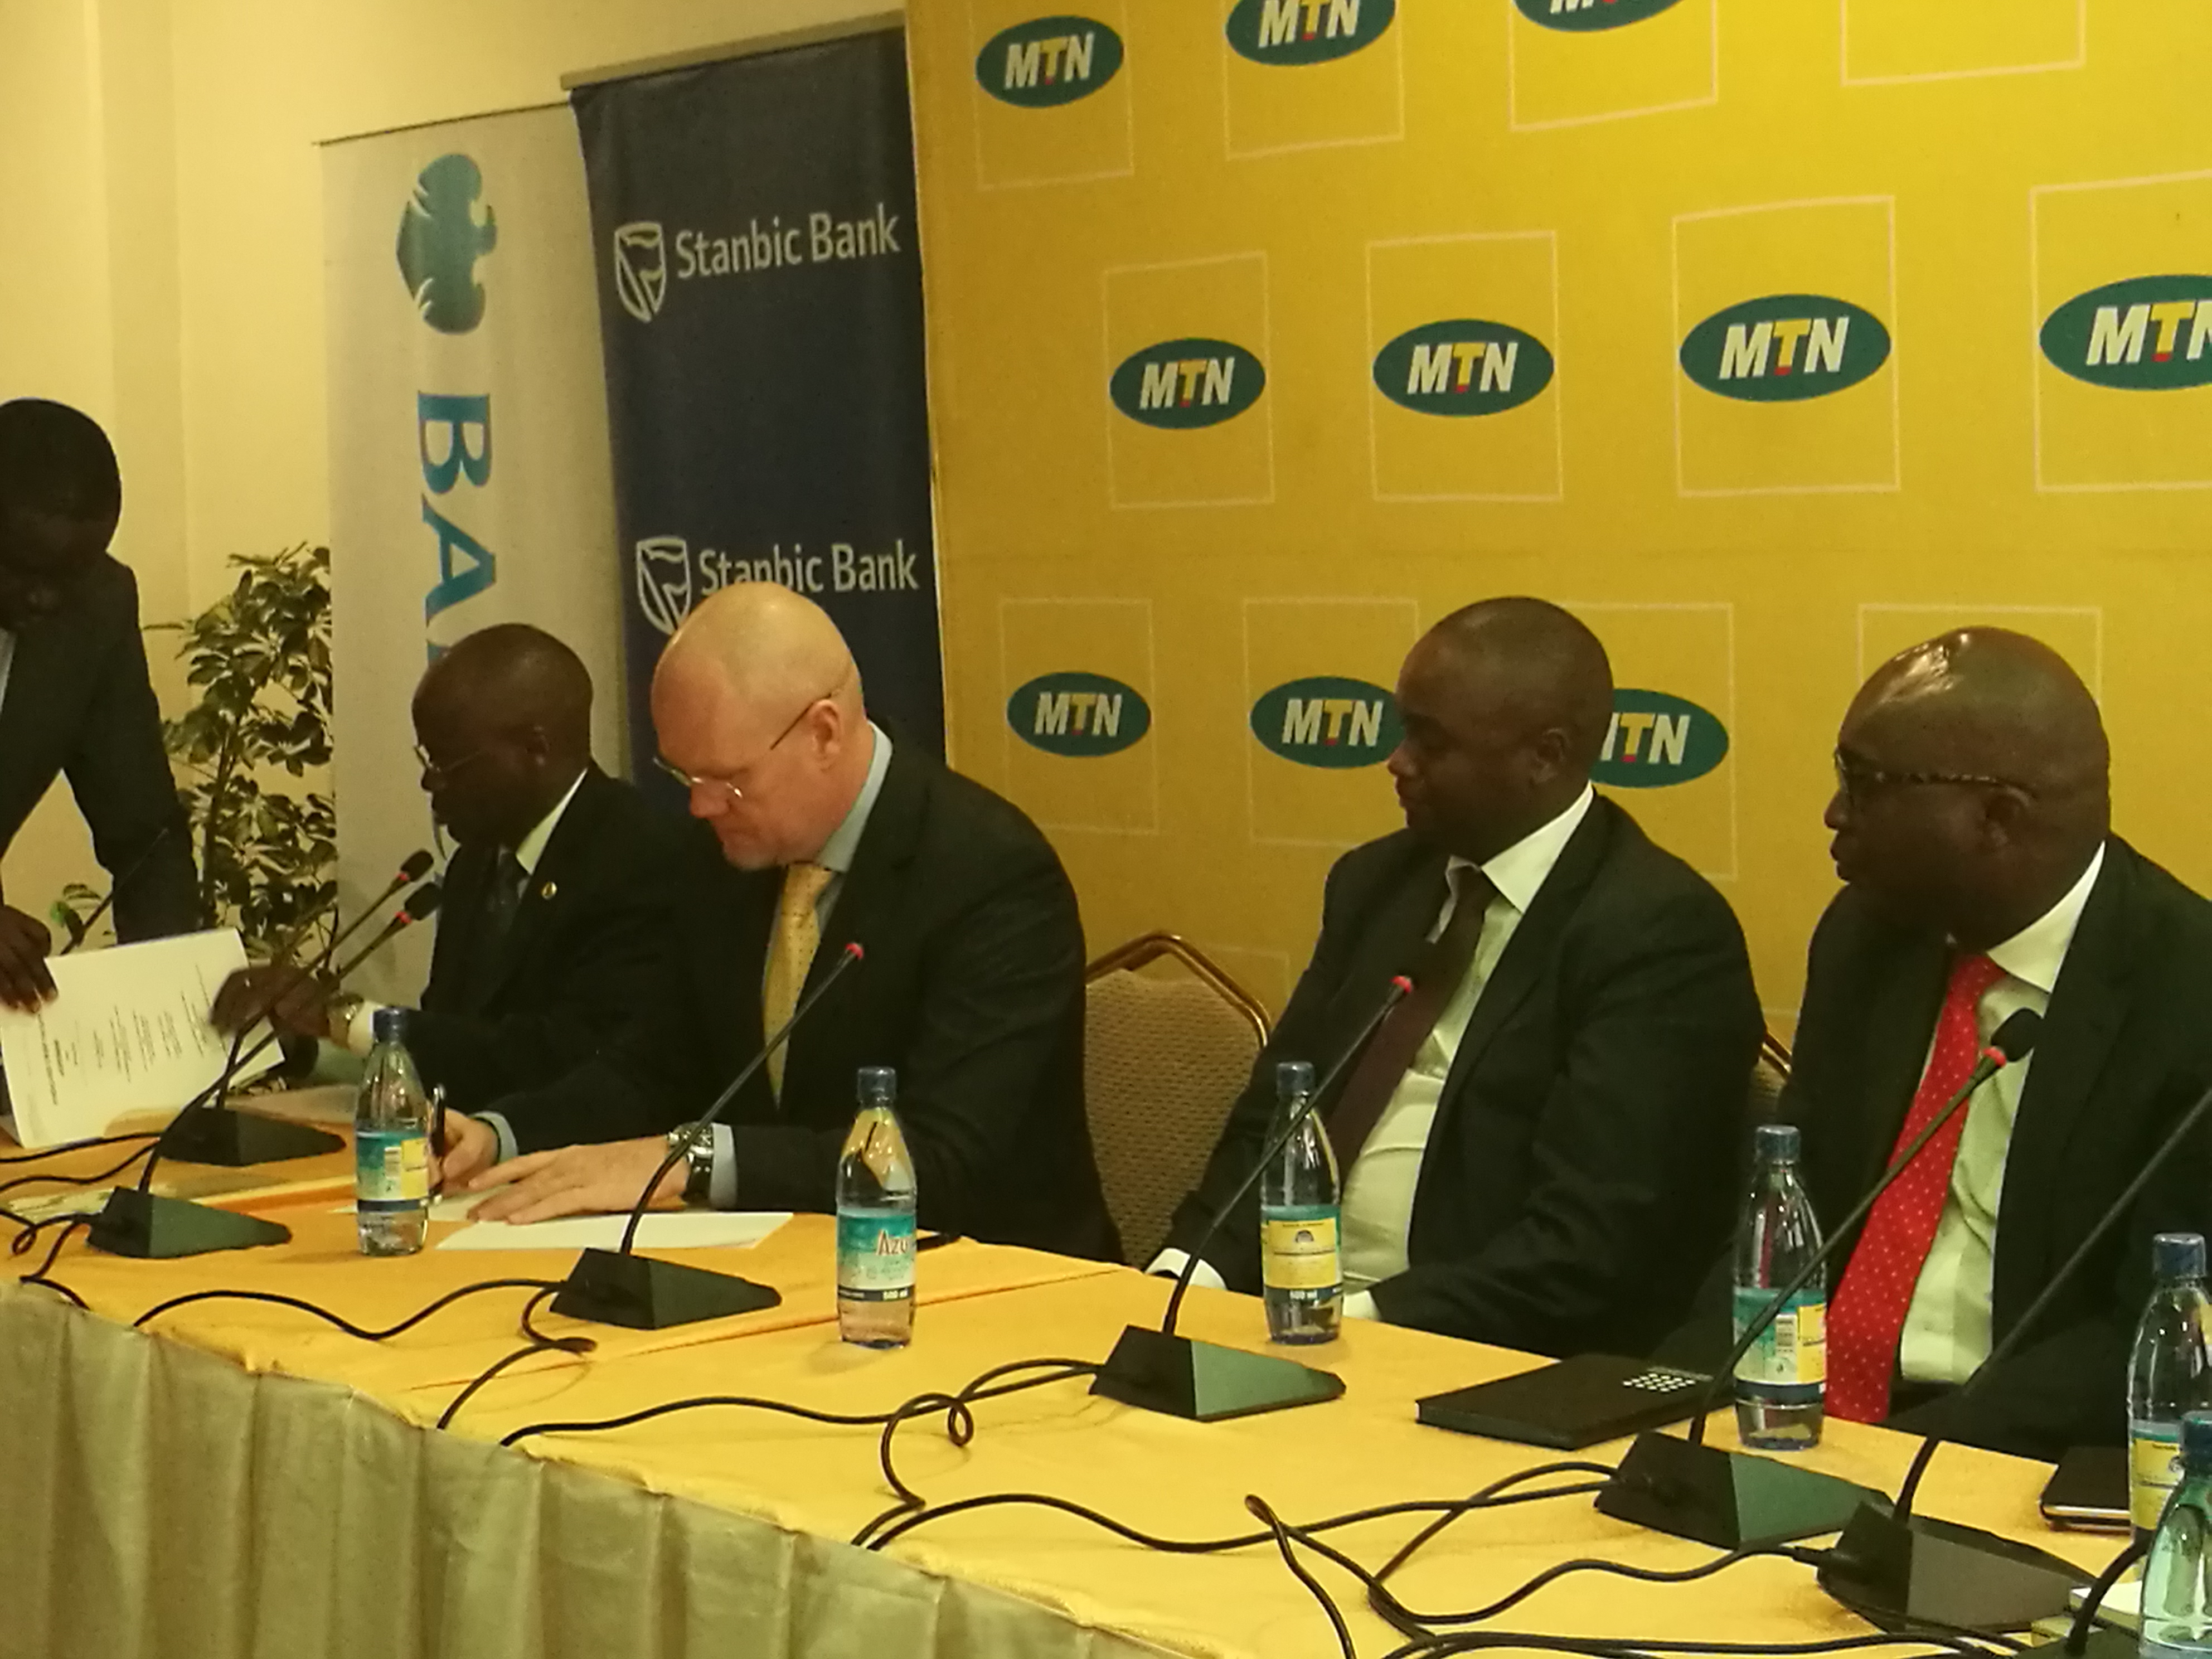 MTN CEO Brian Gouldie 2nd left signs the paperwork for the syndicated credit facility as Stanbic Bank Uganda Patrick Mweheire 3rd left looks on